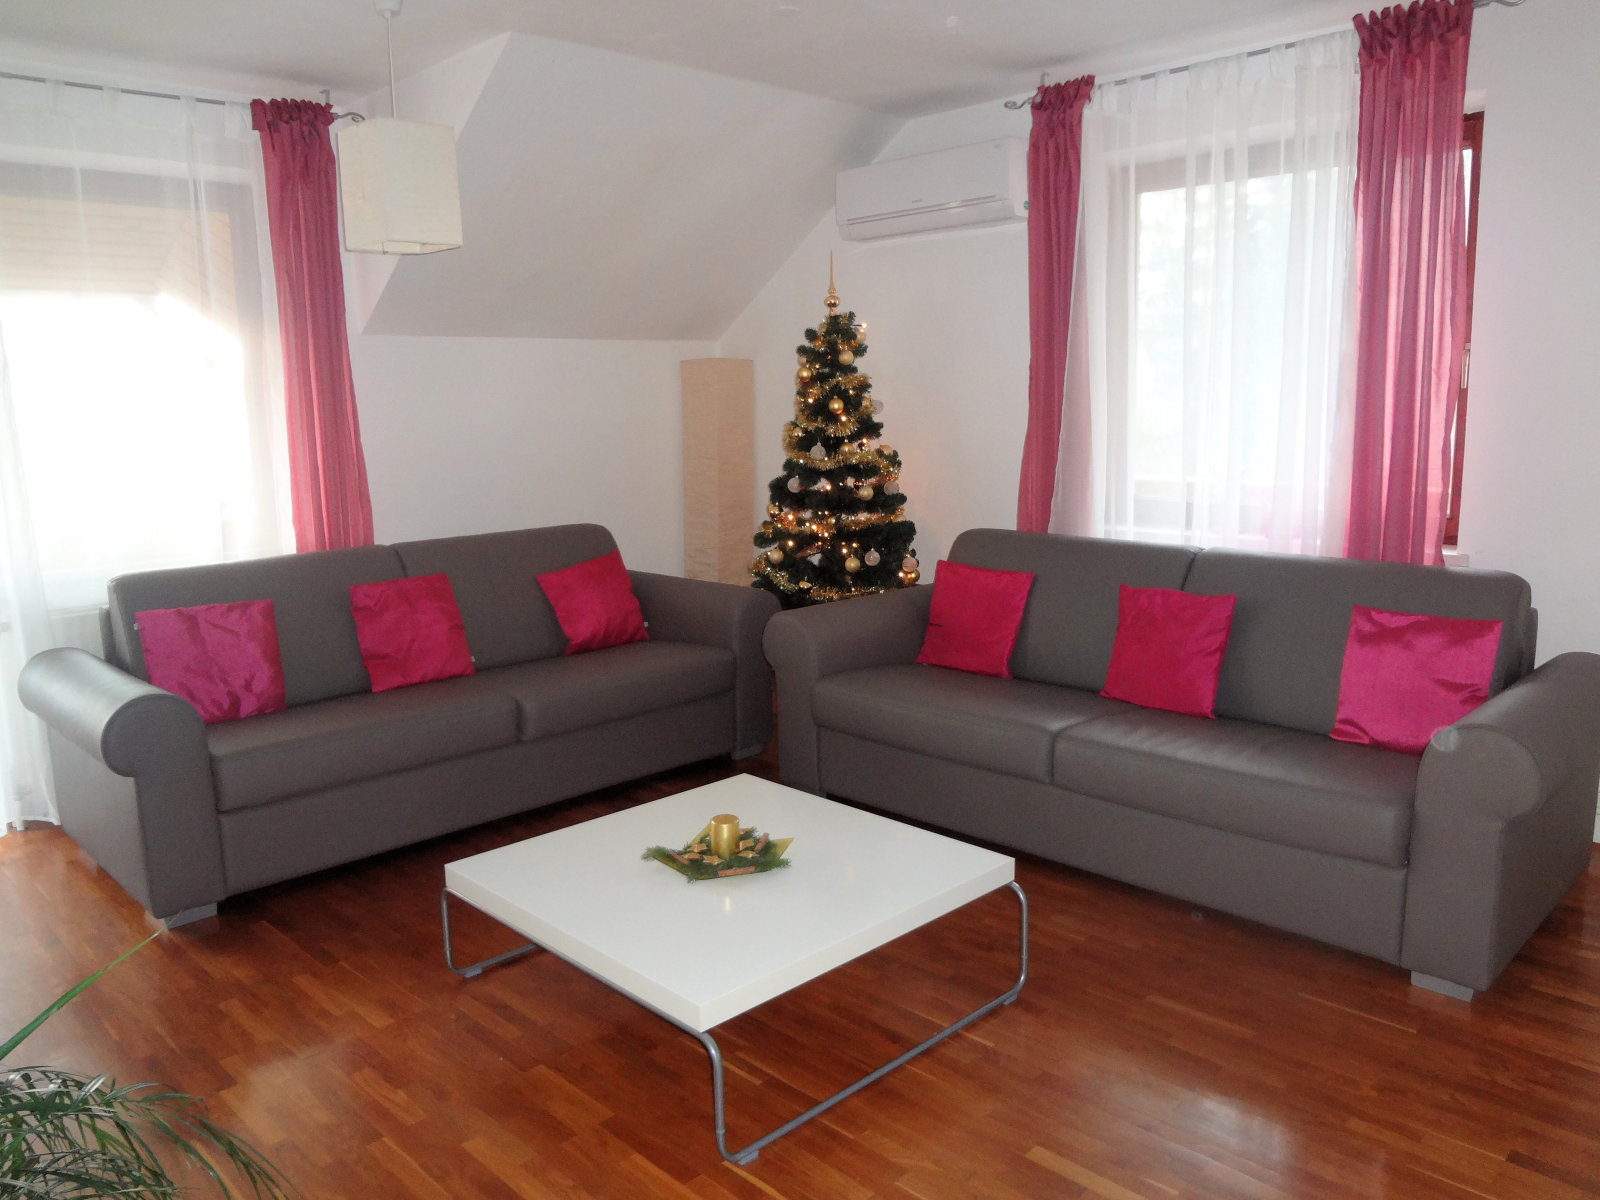 A Christmas tree with lights in the Fine Stay Apartment in Slovenia